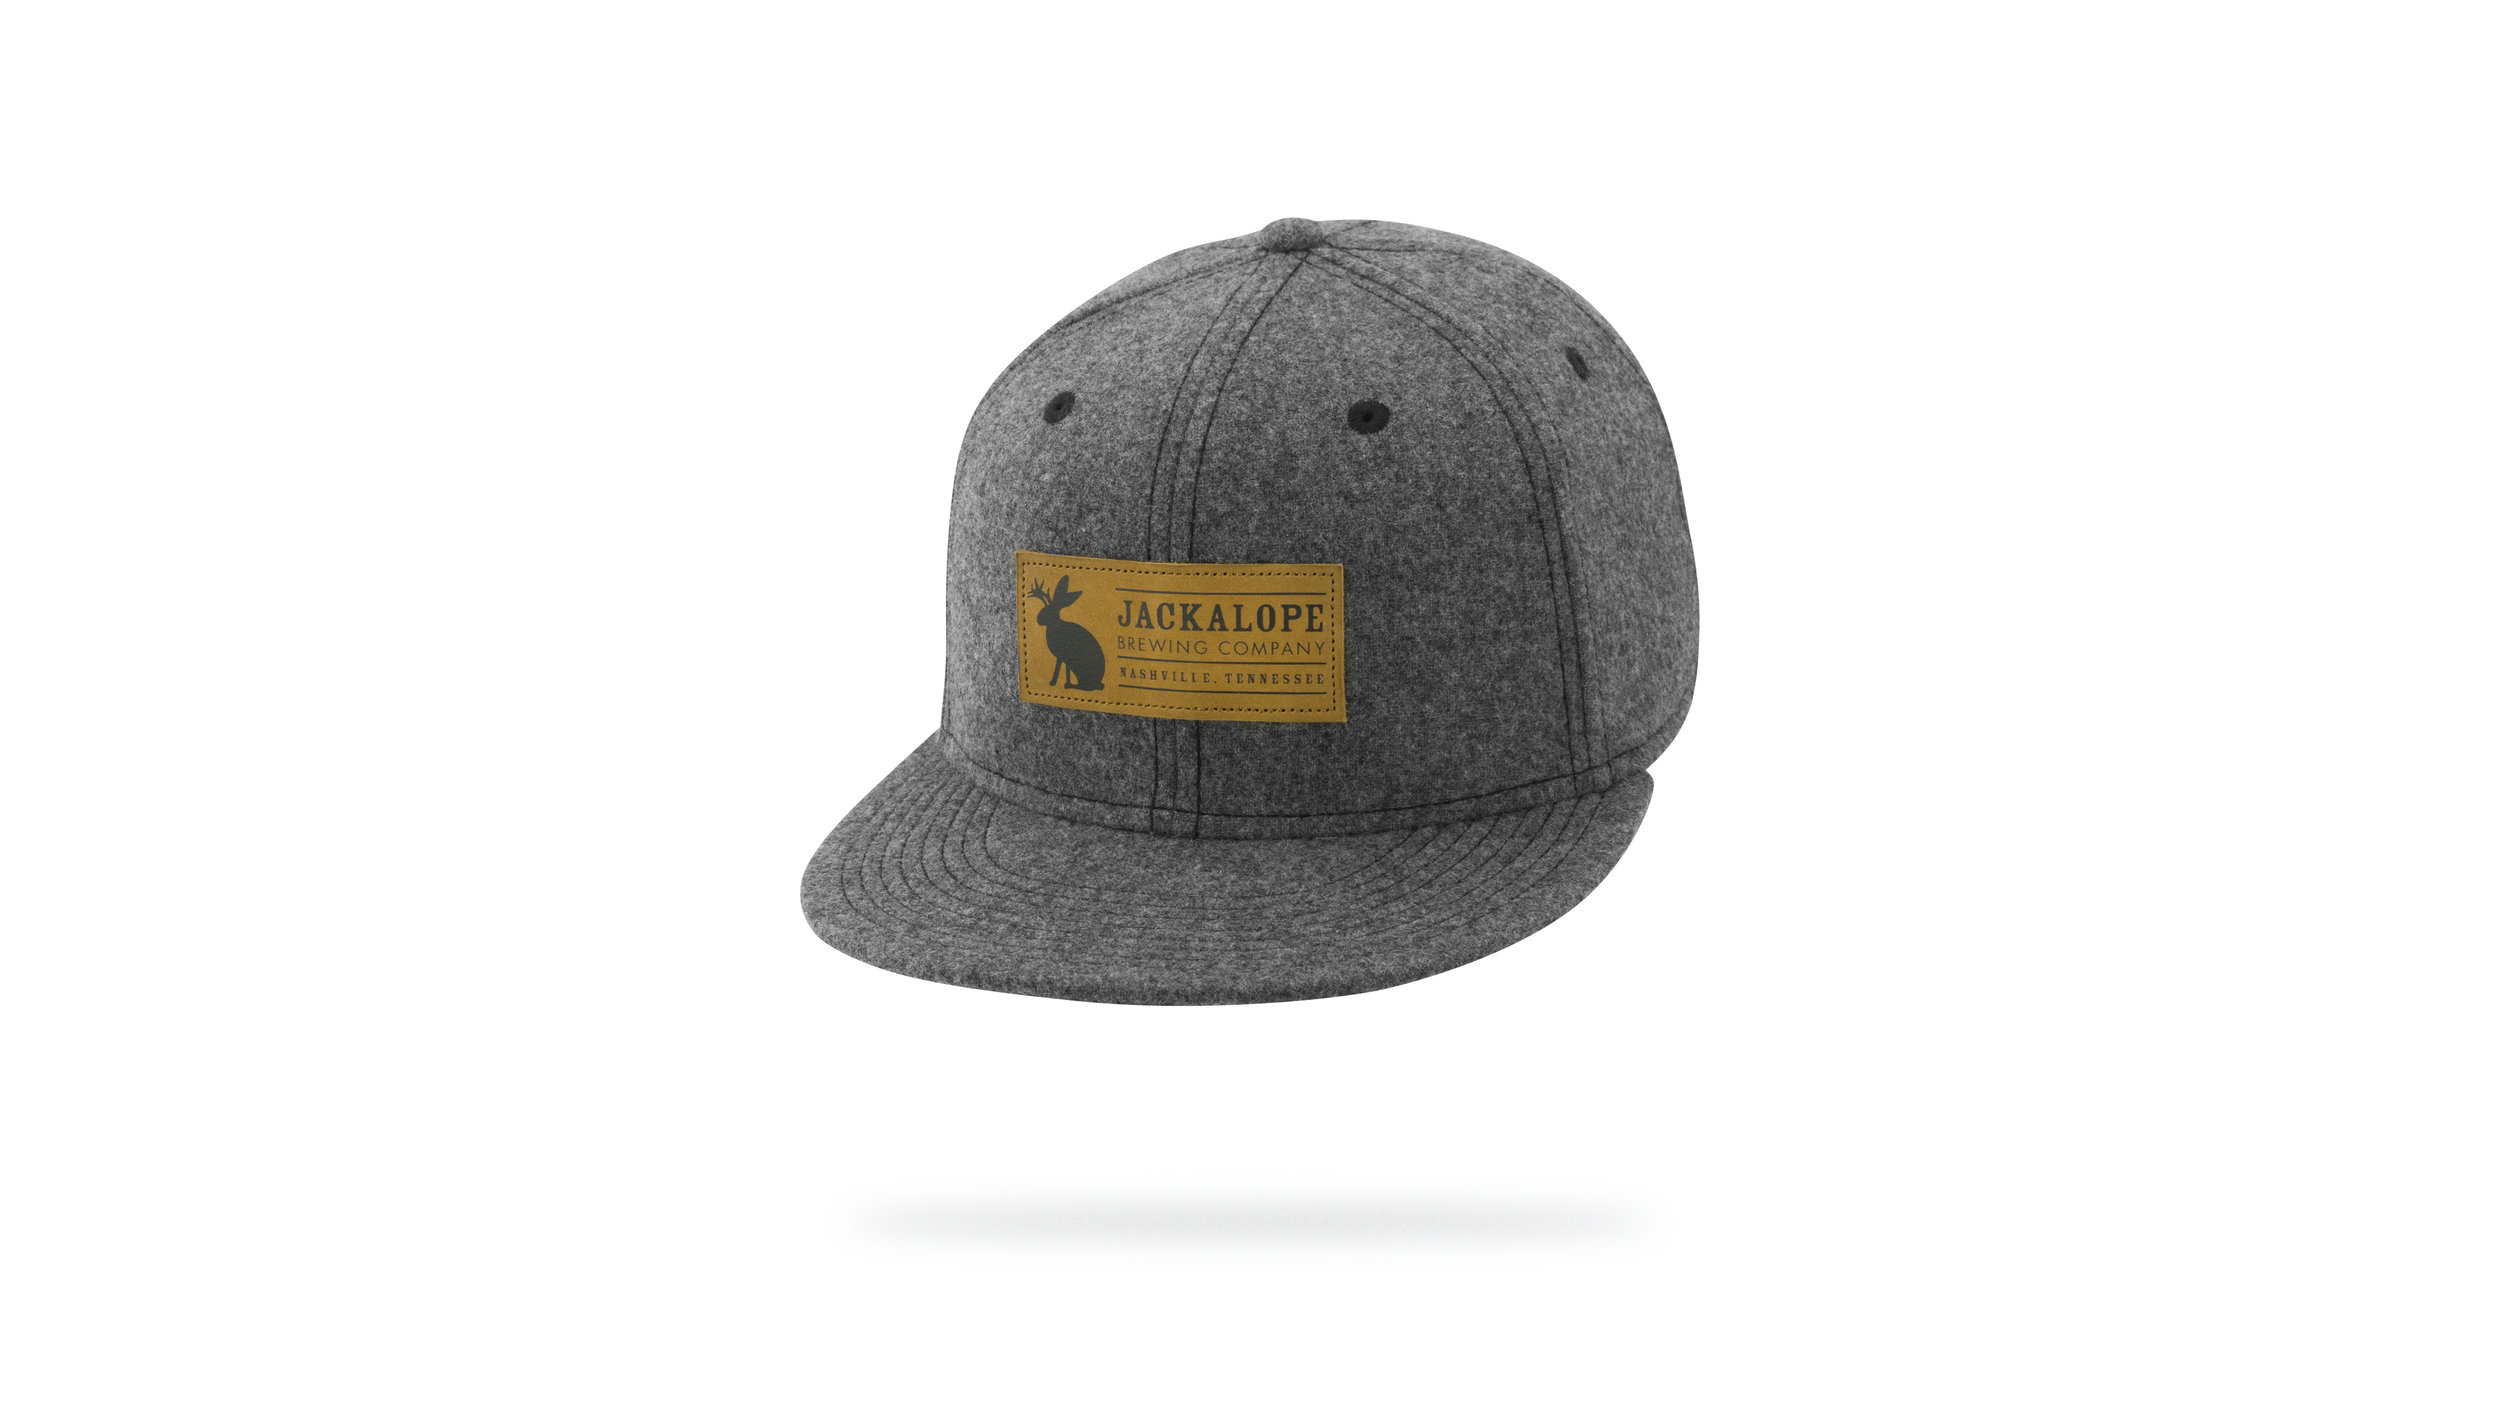 Featured Hat: NEW Polyester-Wool Flat Bill SnapBack Cap w/ Leather Patch Applique